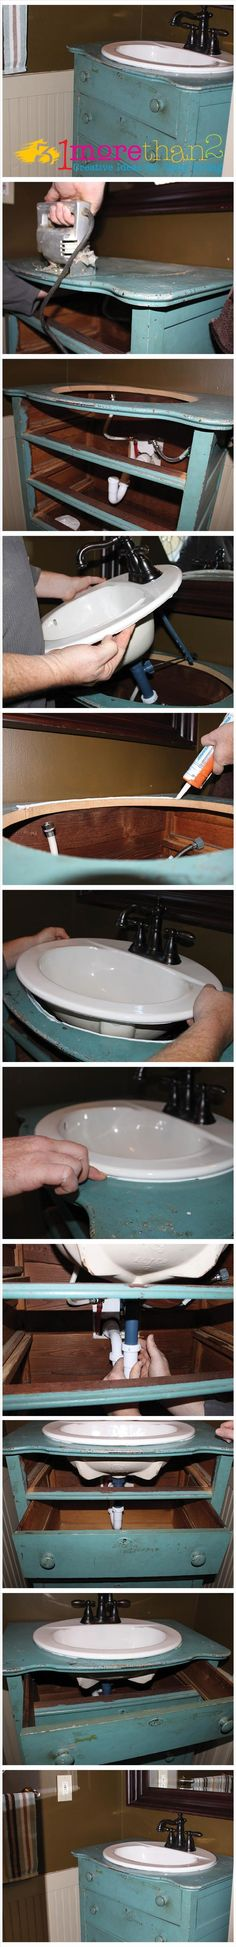 Make a bathroom sink out of an old dresser. This site has so much cool recycle ideas.